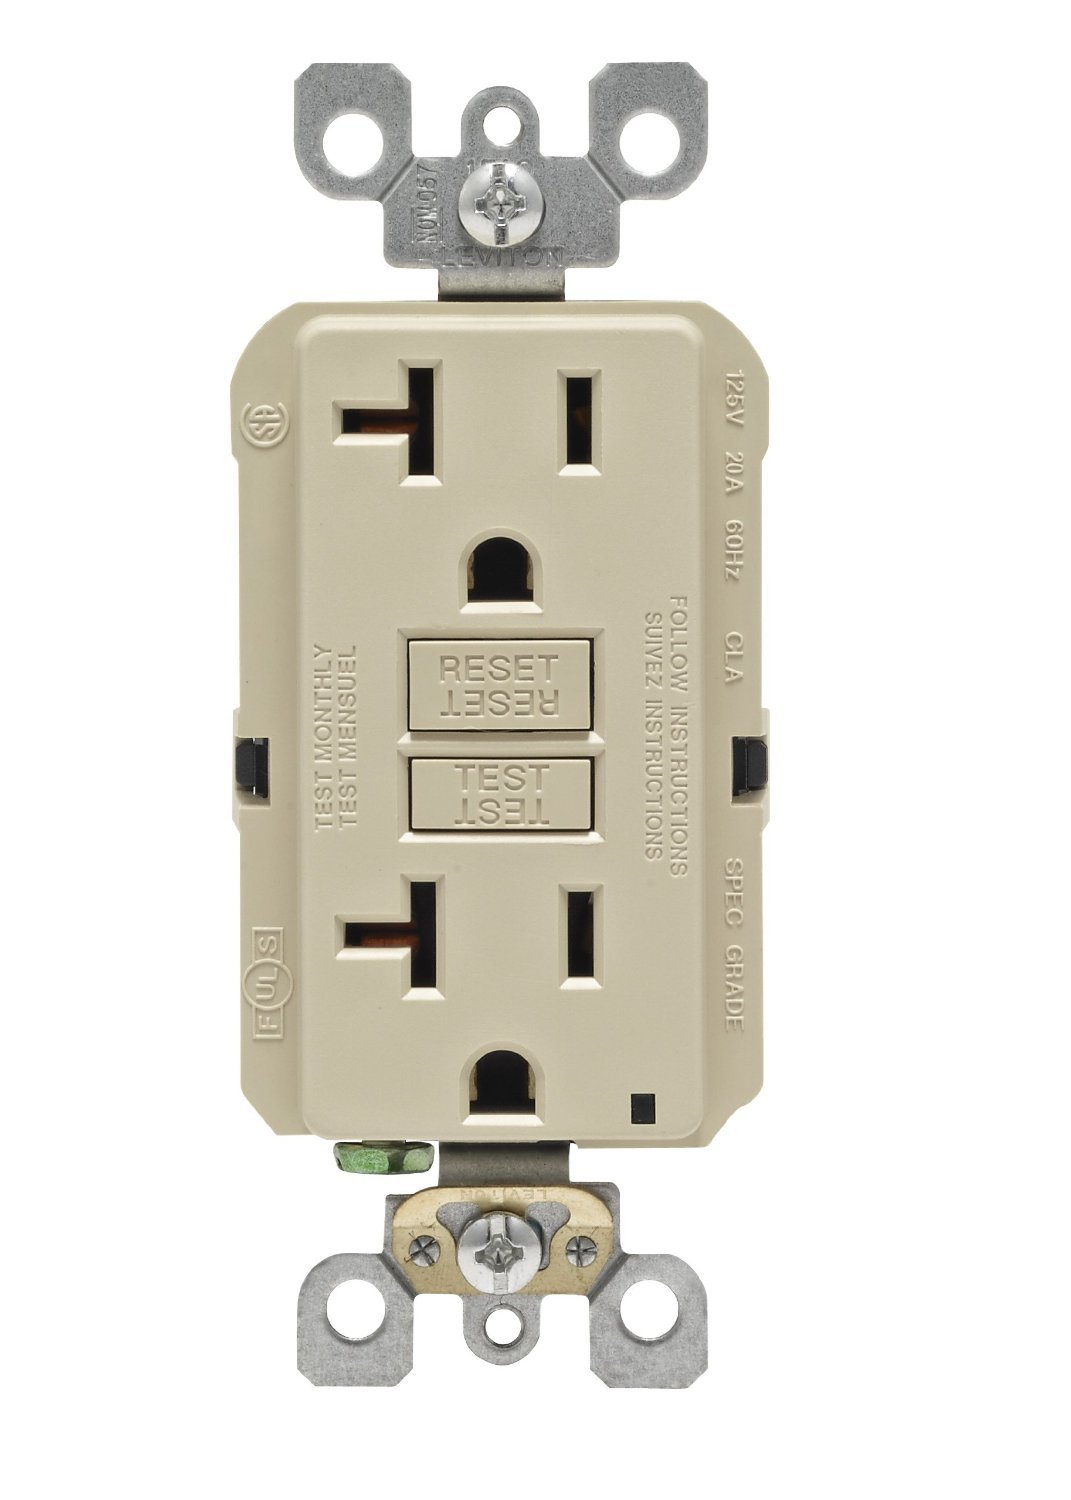 61jfg5T%2B LL._SL1500_ leviton gfnt1 w self test smartlockpro slim gfci non tamper GFCI Breaker Wiring Diagram at fashall.co